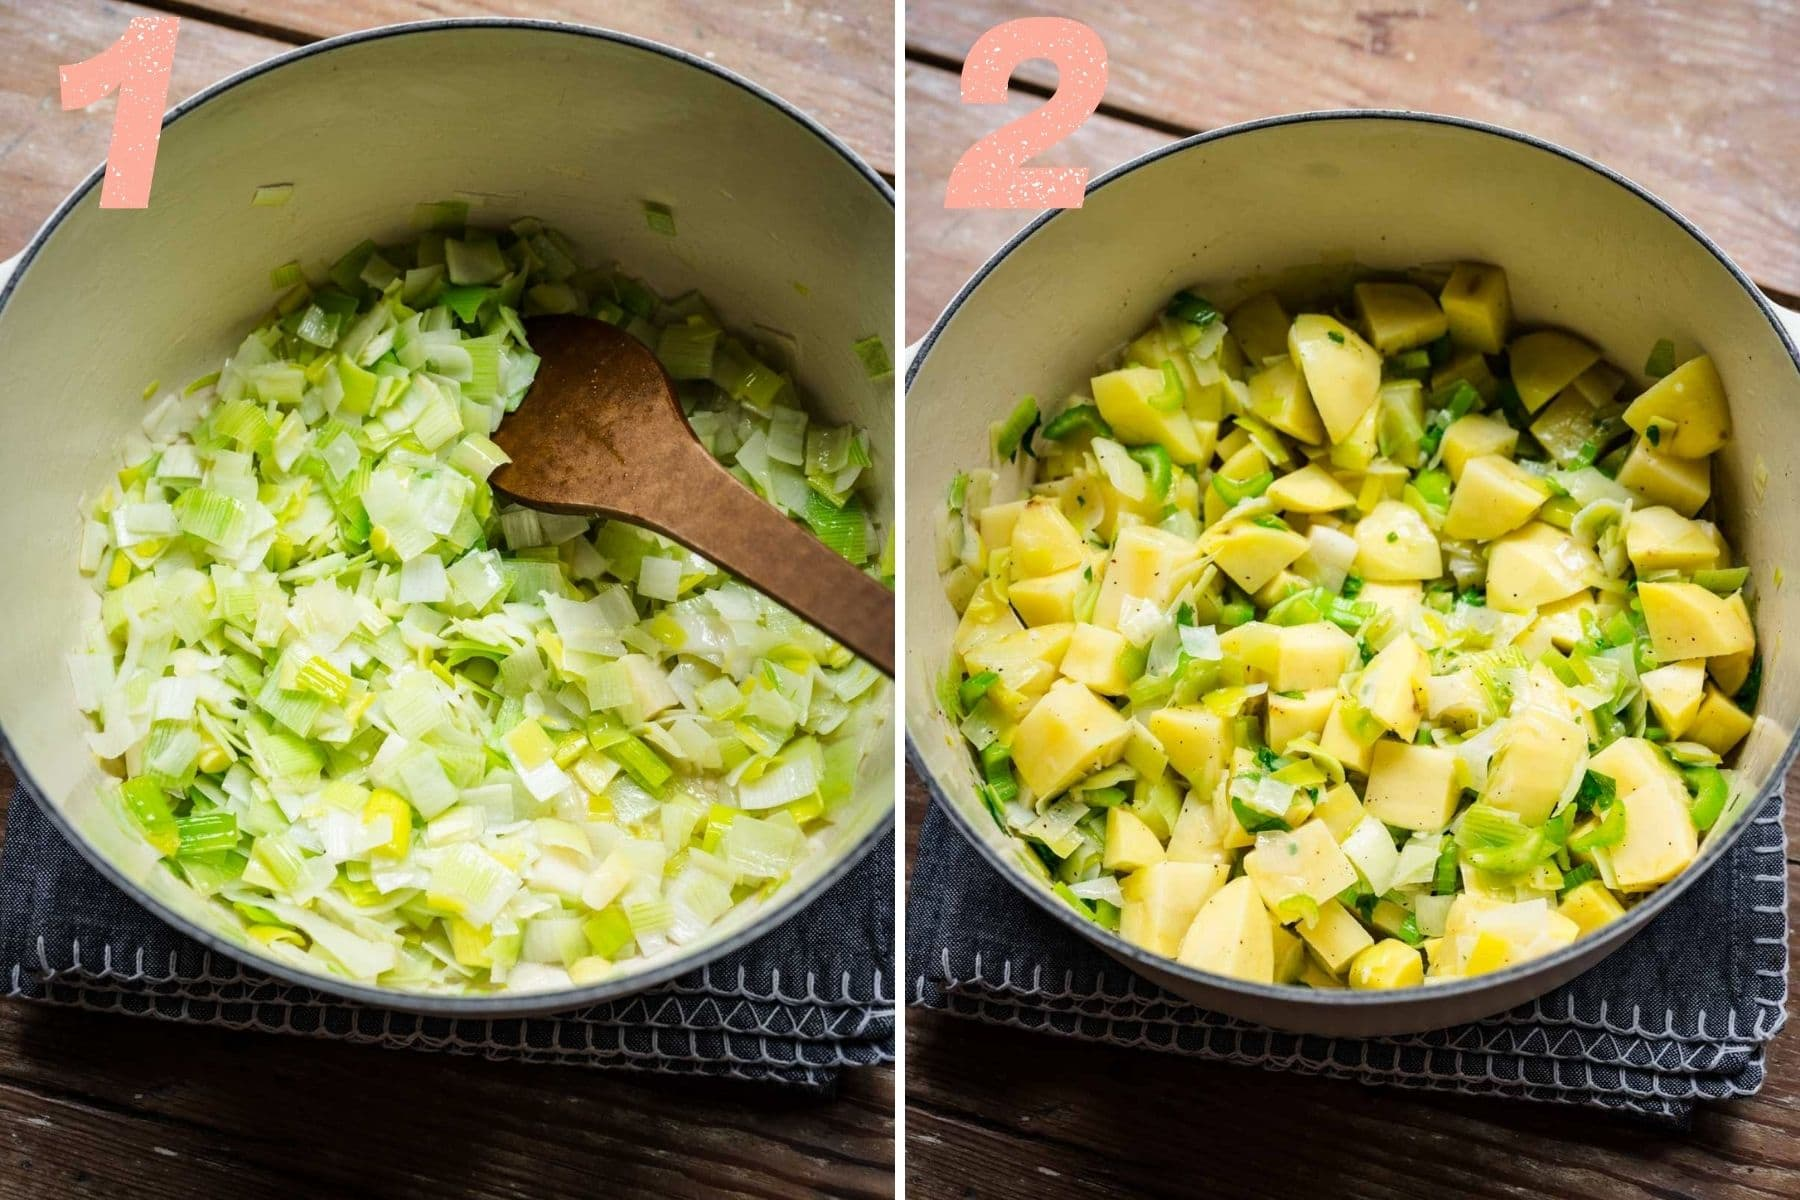 On the left: leeks sauteing in a pot. On the right: potatoes are added to the pot.